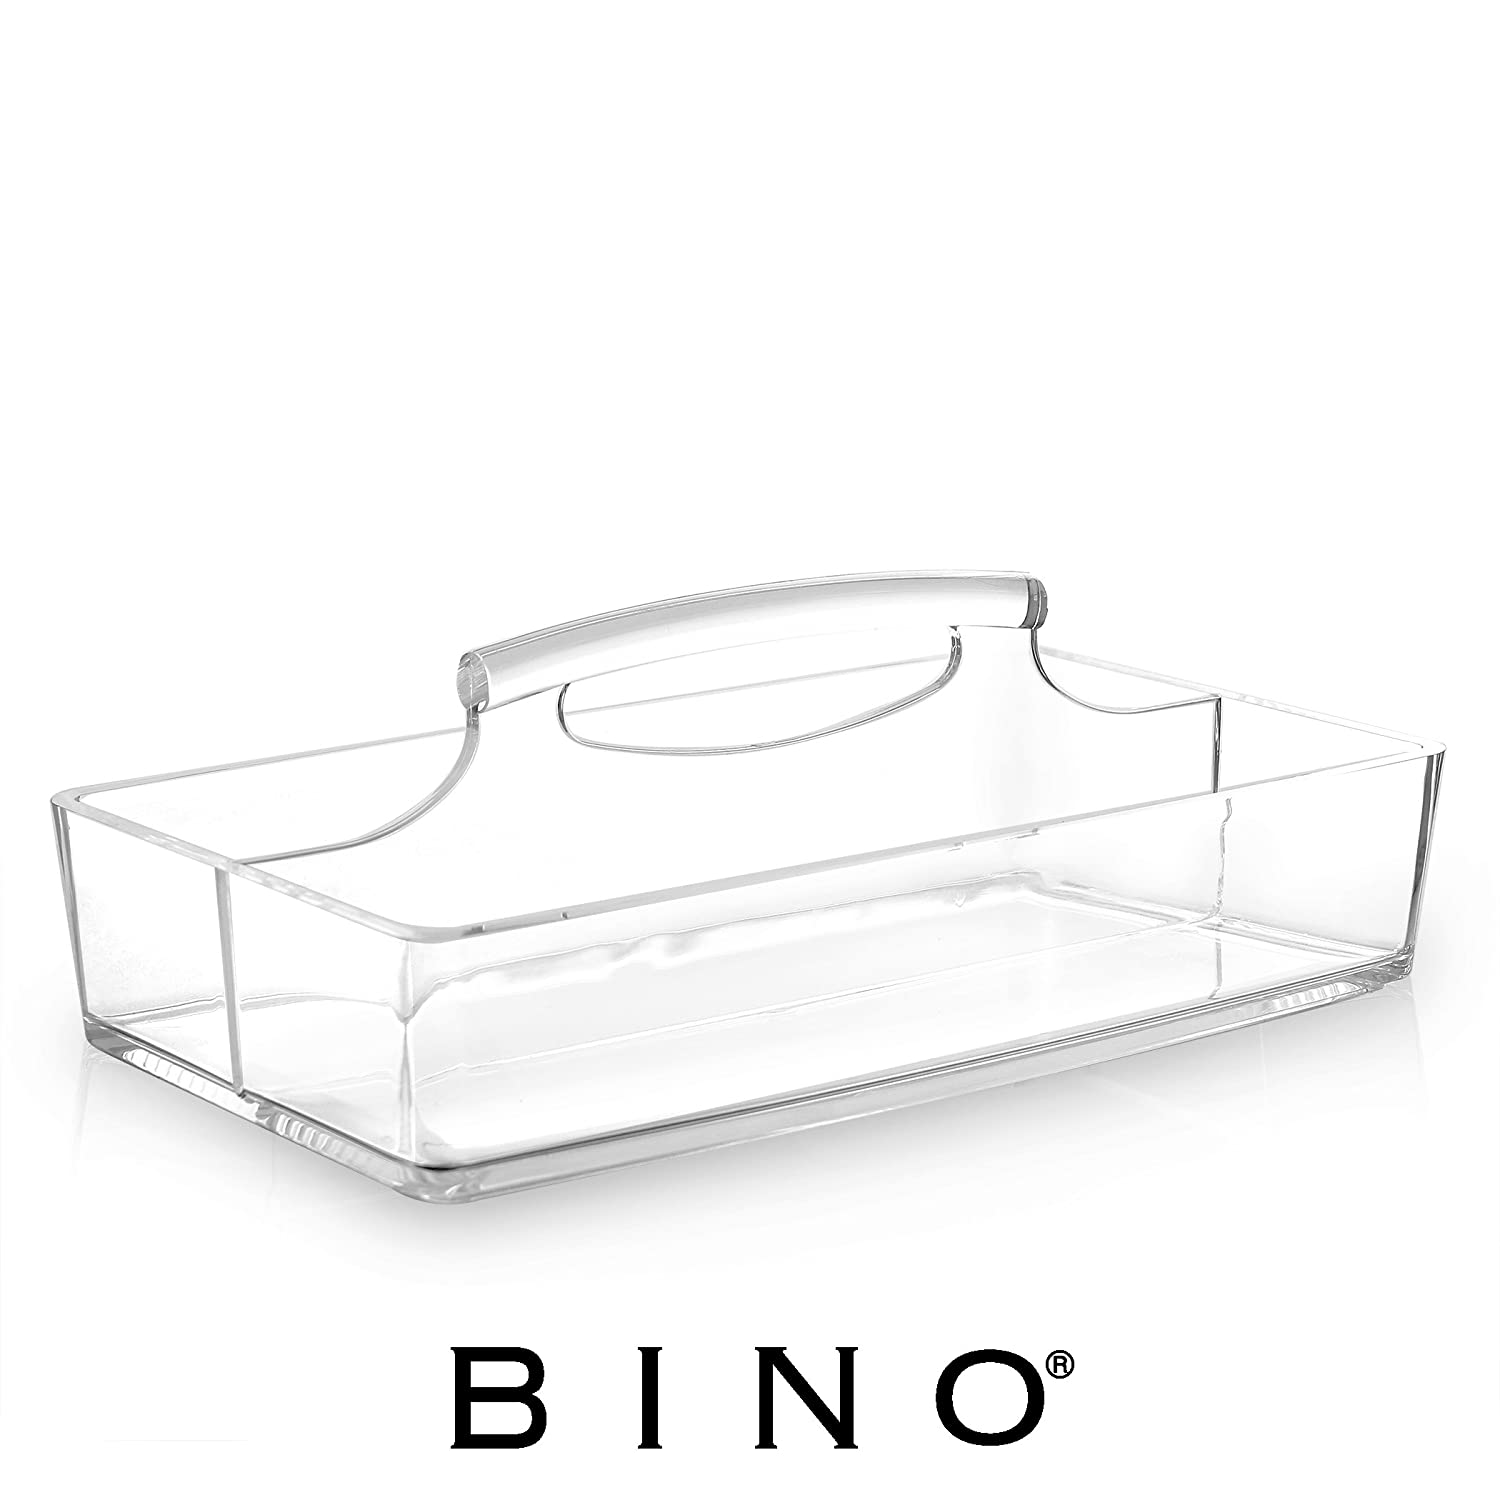 BINO The Go Caddy 2 Compartment Acrylic Makeup and Jewelry Organizer with Carrying Handle